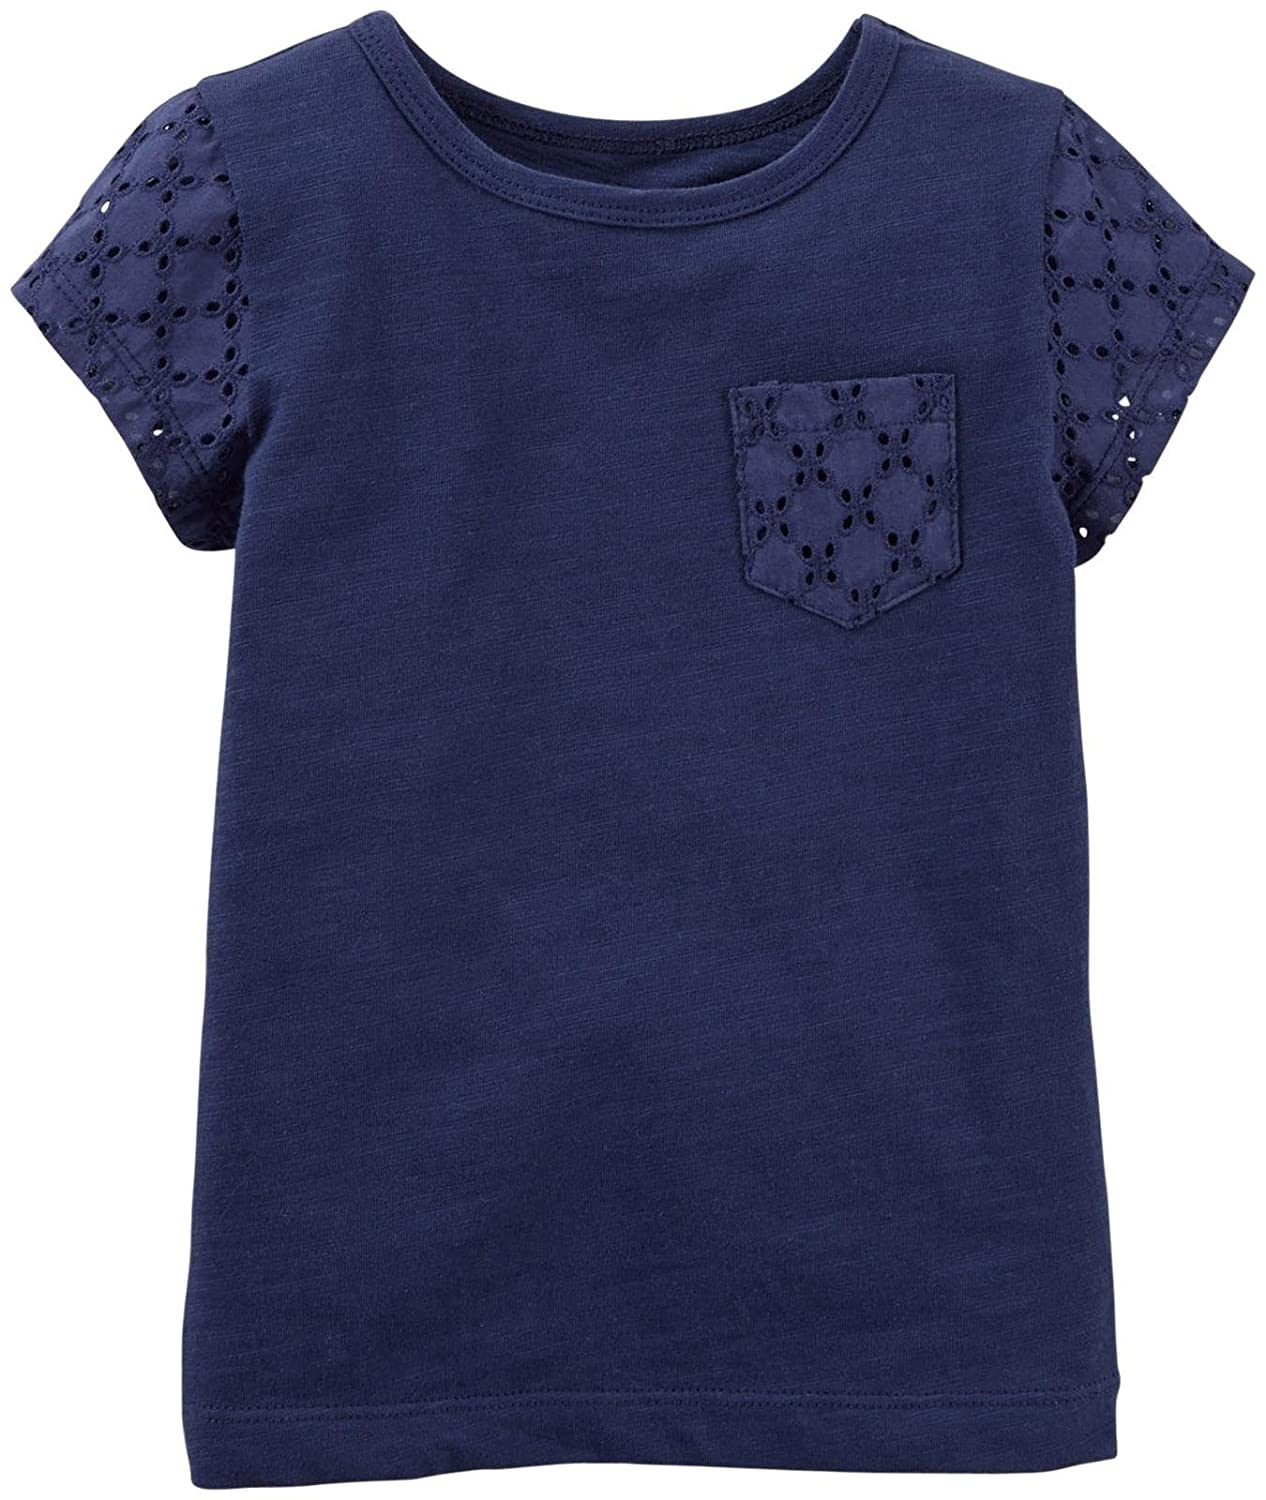 Baby Carters Baby Girls Lace Pocket Tee